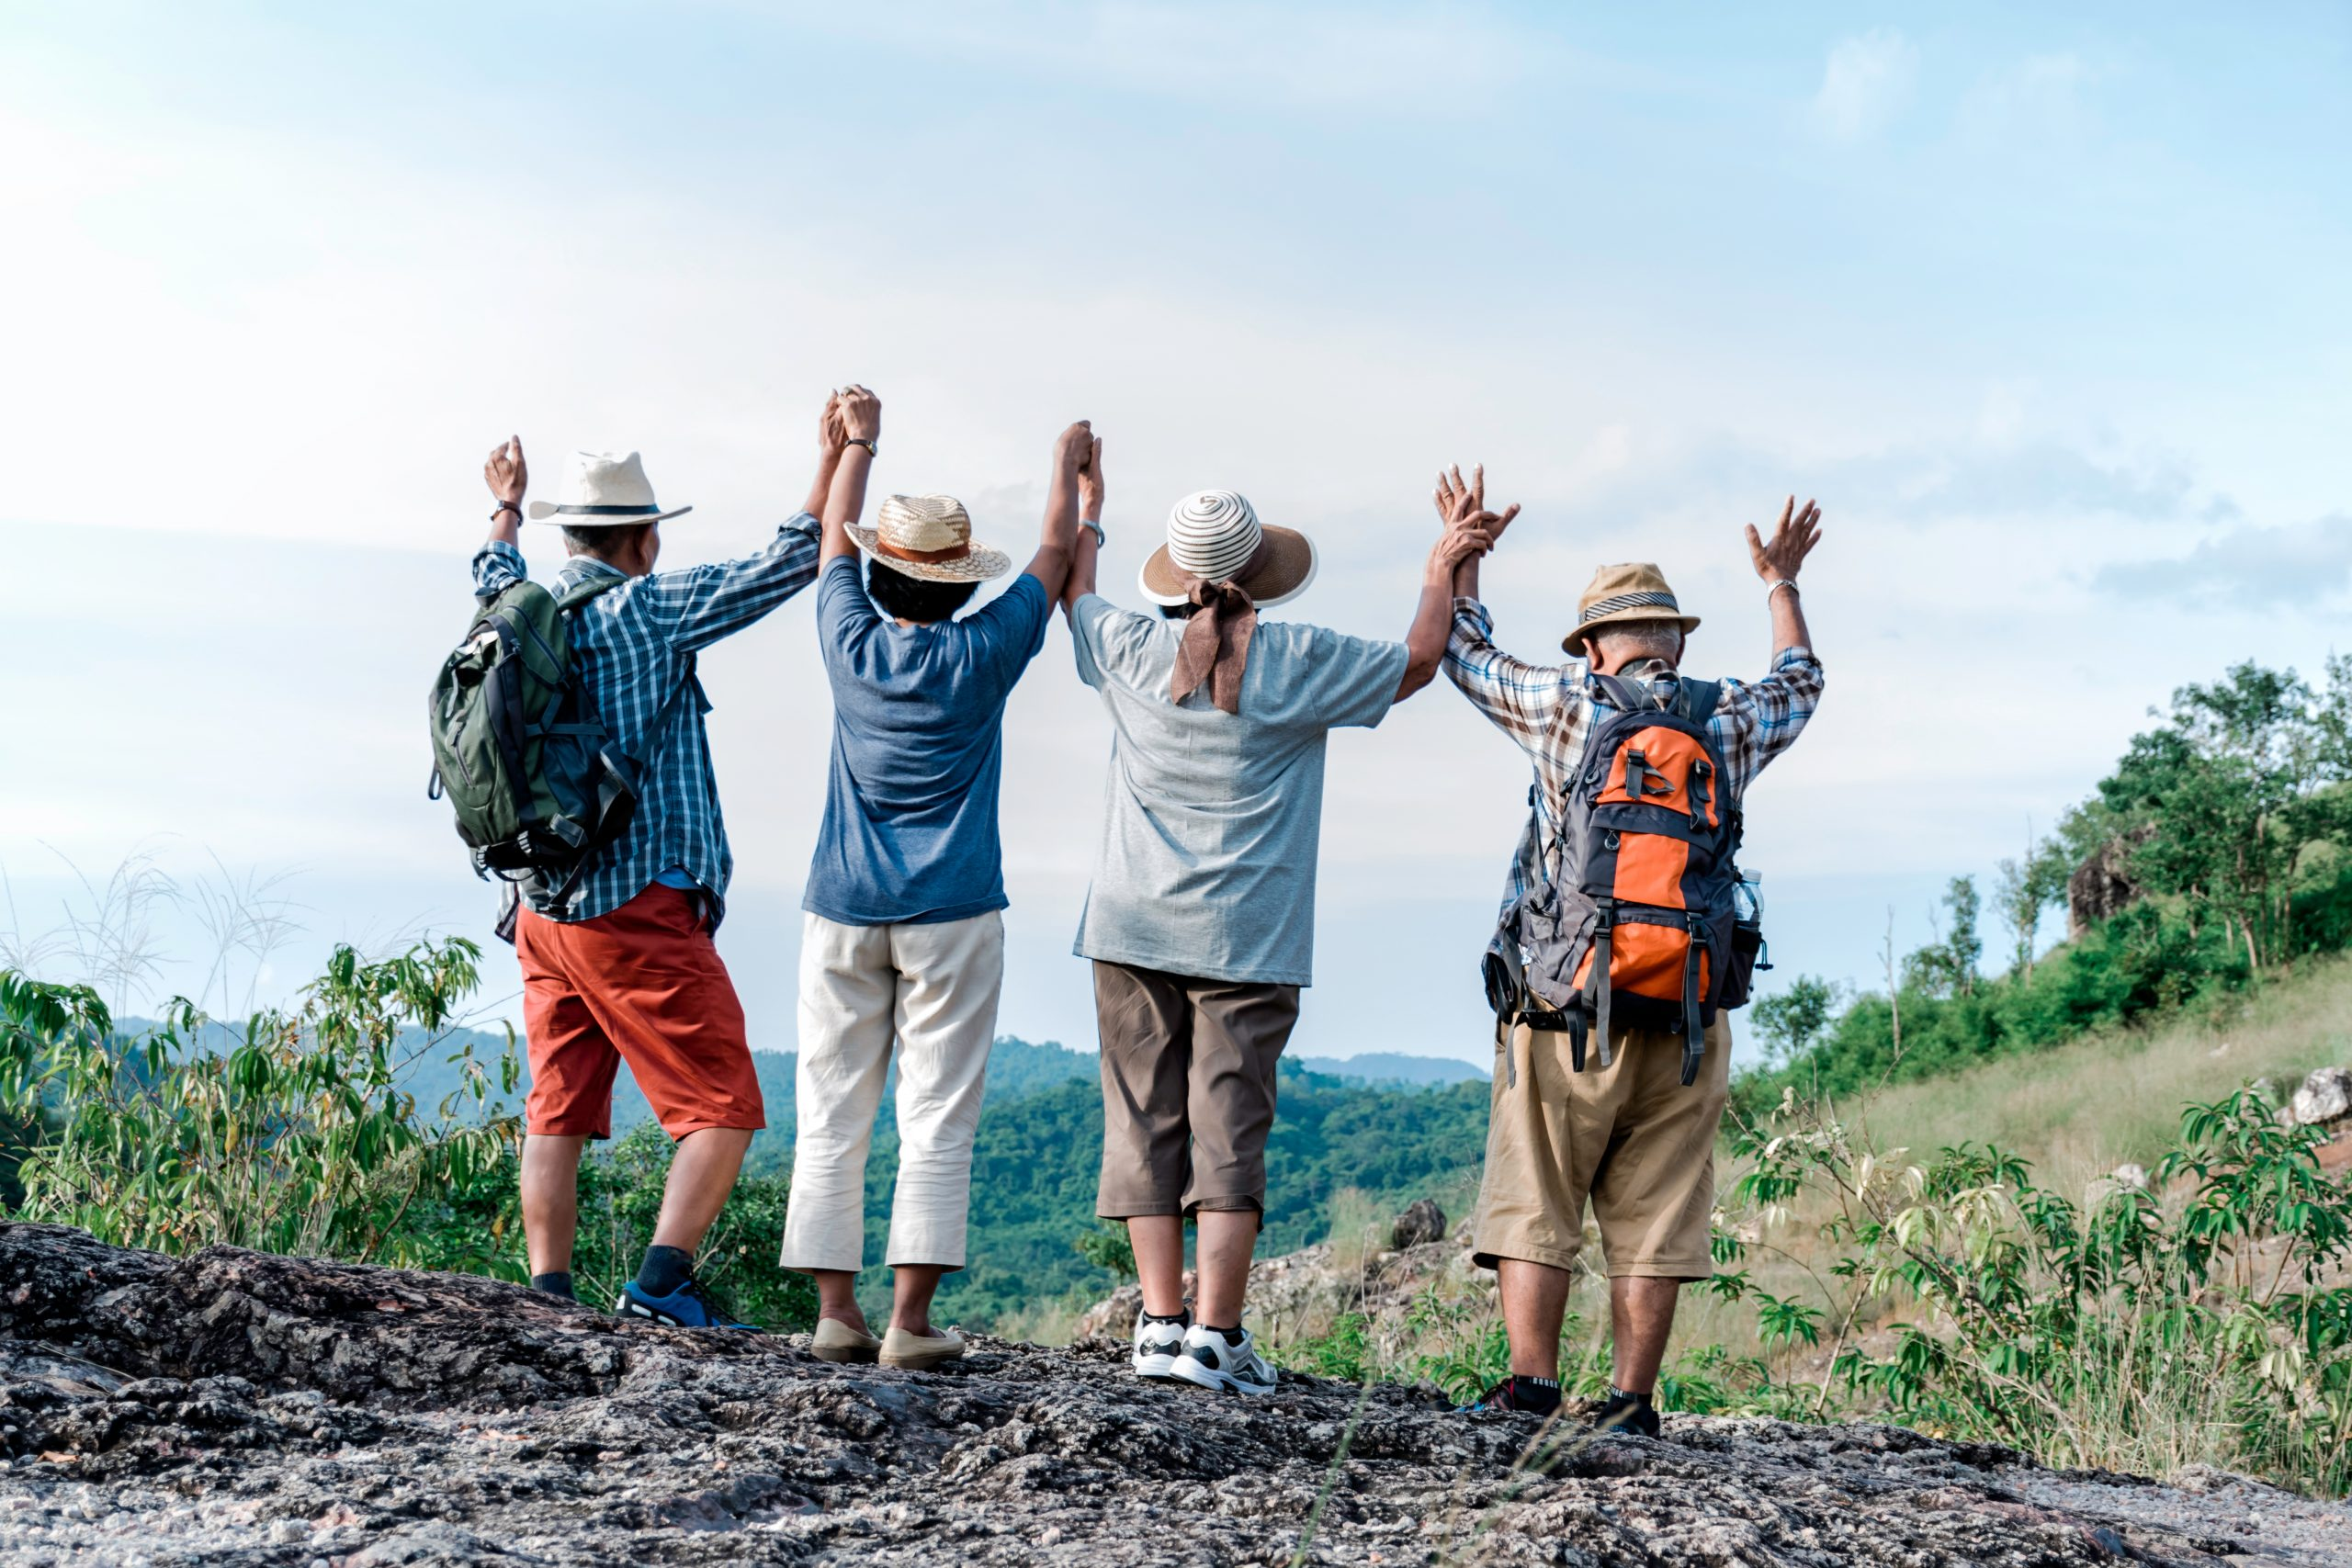 group-of-elders-travellers-holding-hands-in-the-air